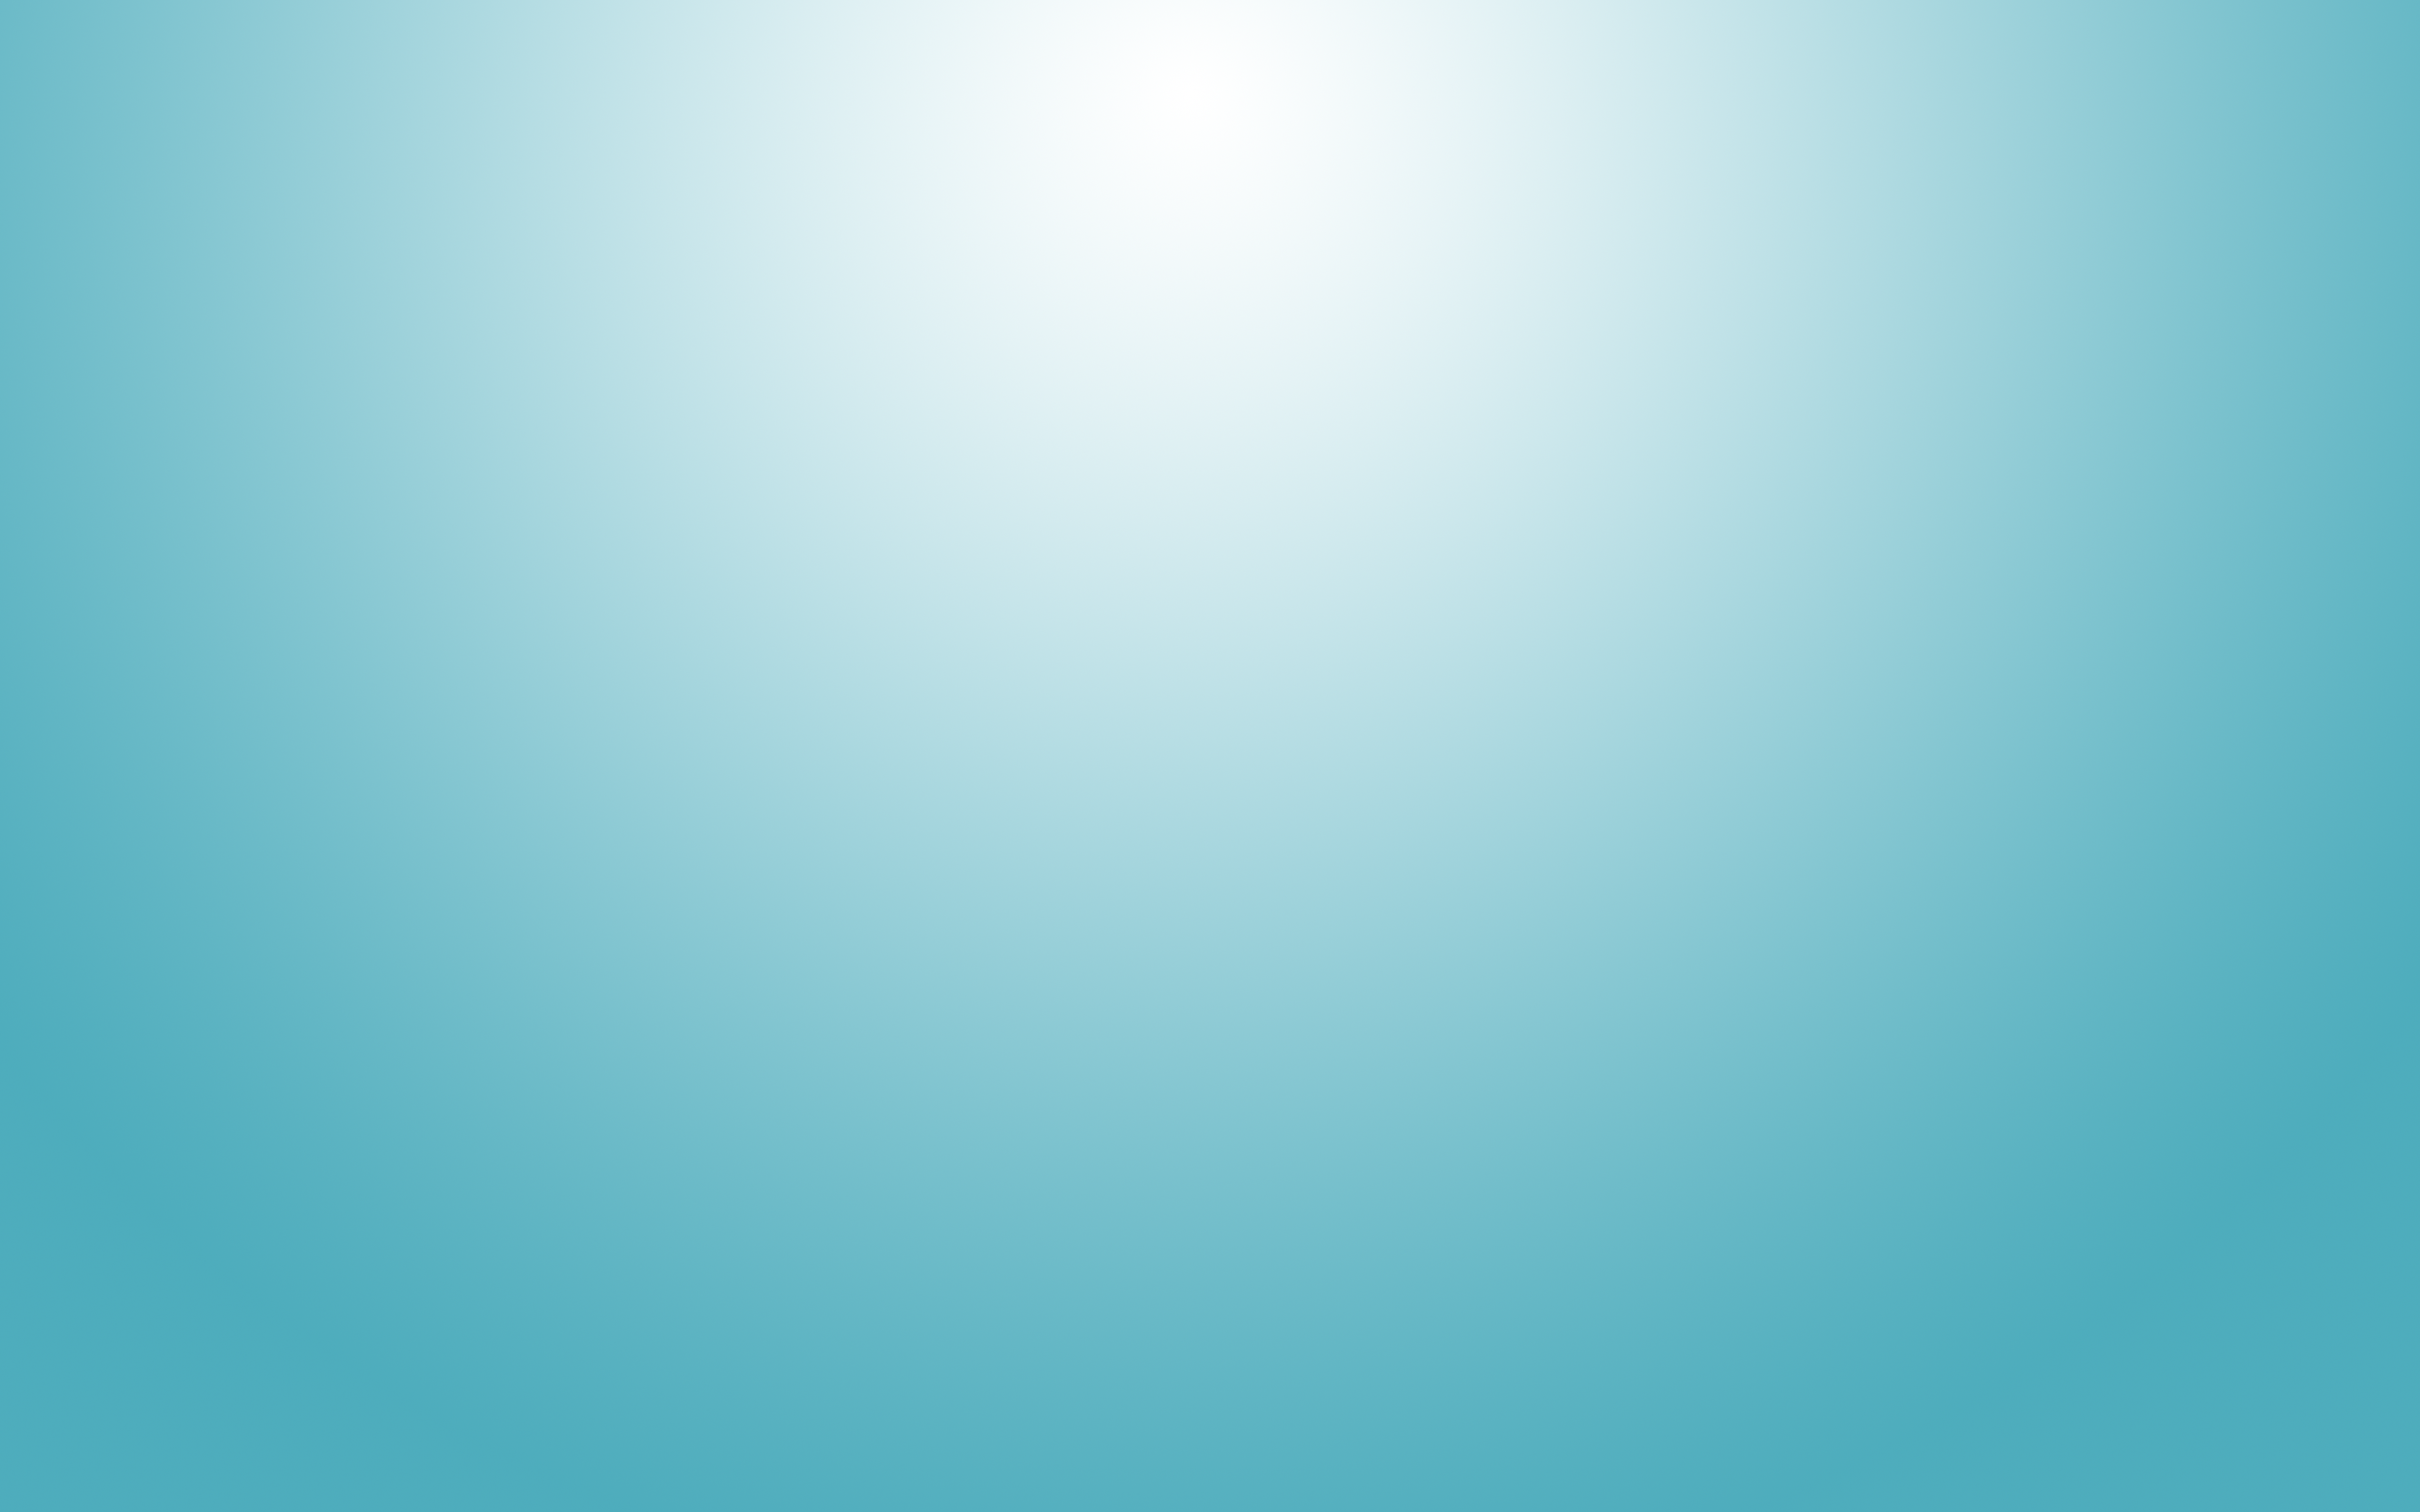 light gradient wallpaper 26039